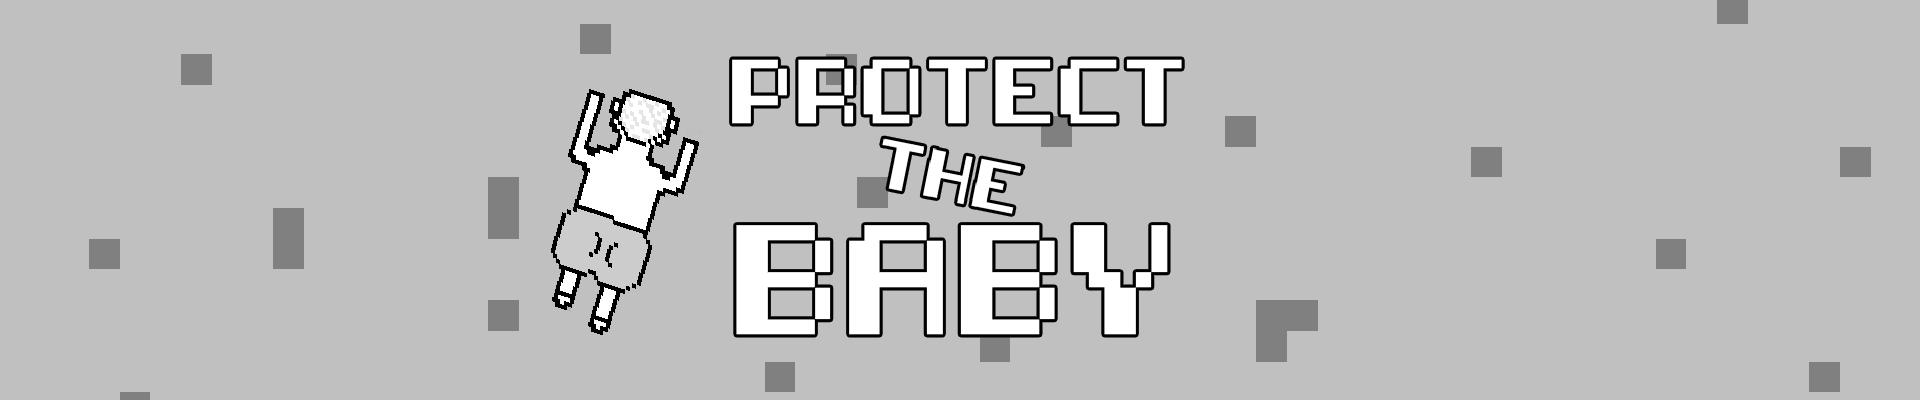 Protect The Baby